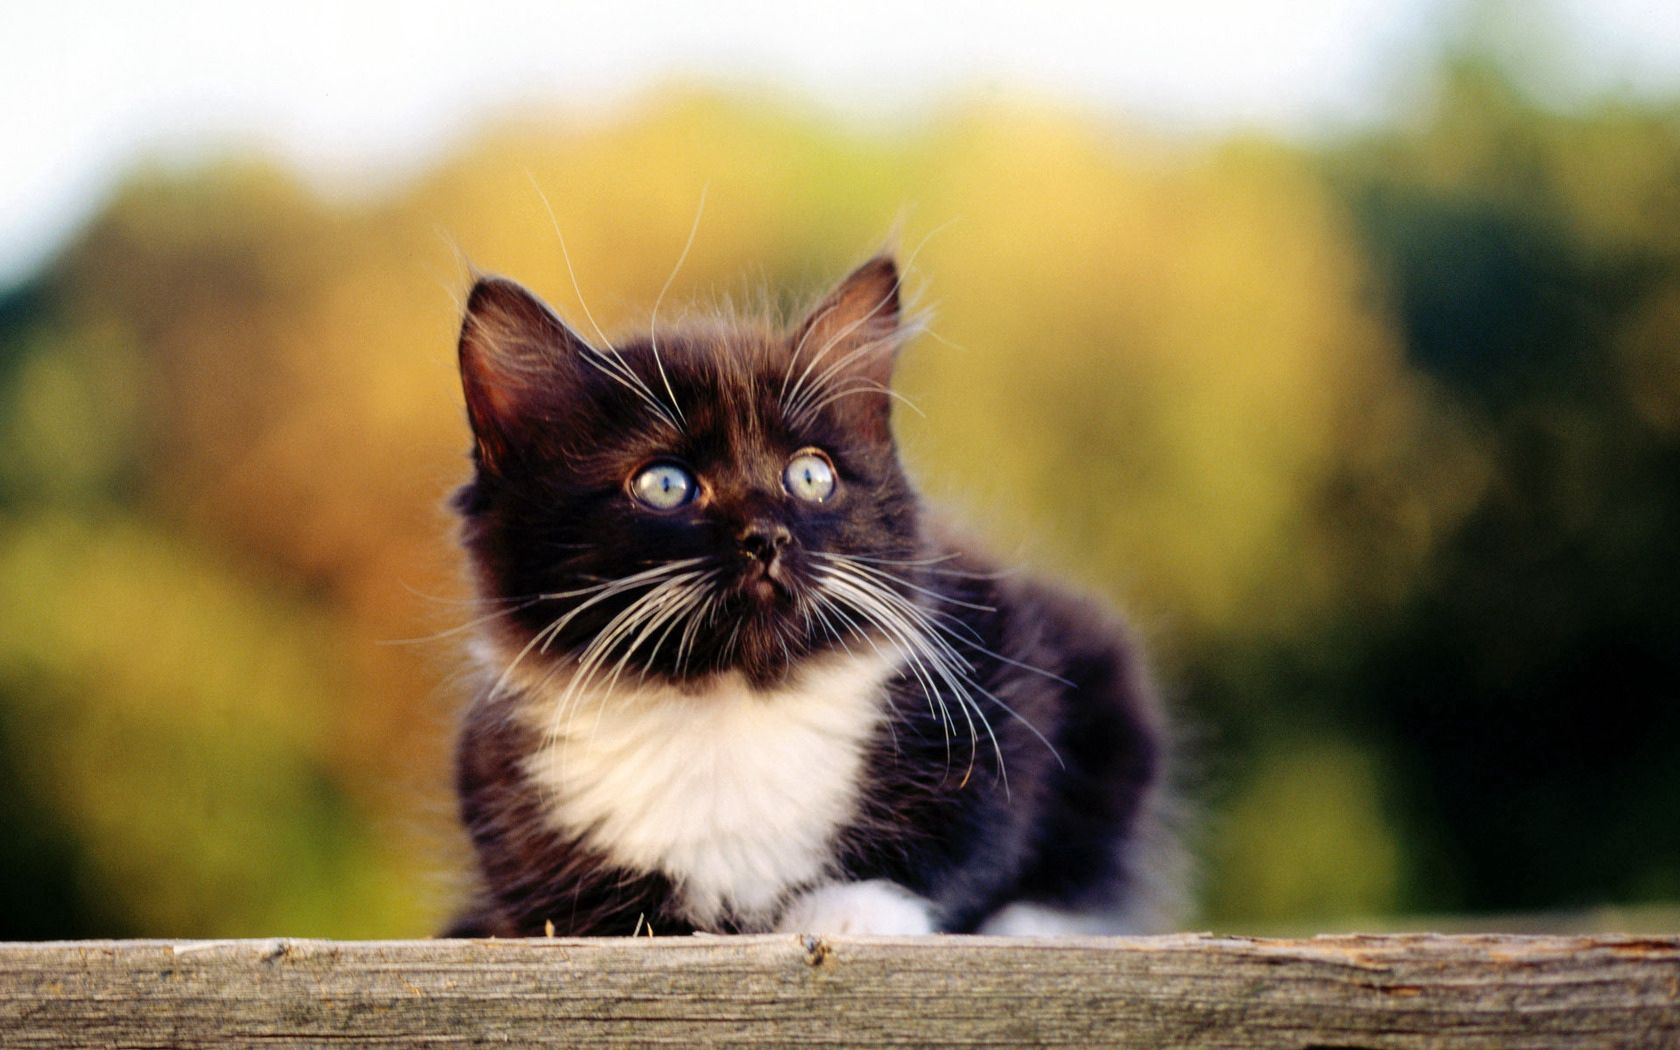 77493 download wallpaper Animals, Kitty, Kitten, To Lie Down, Lie, Muzzle, Spotted, Spotty, Nice, Sweetheart screensavers and pictures for free